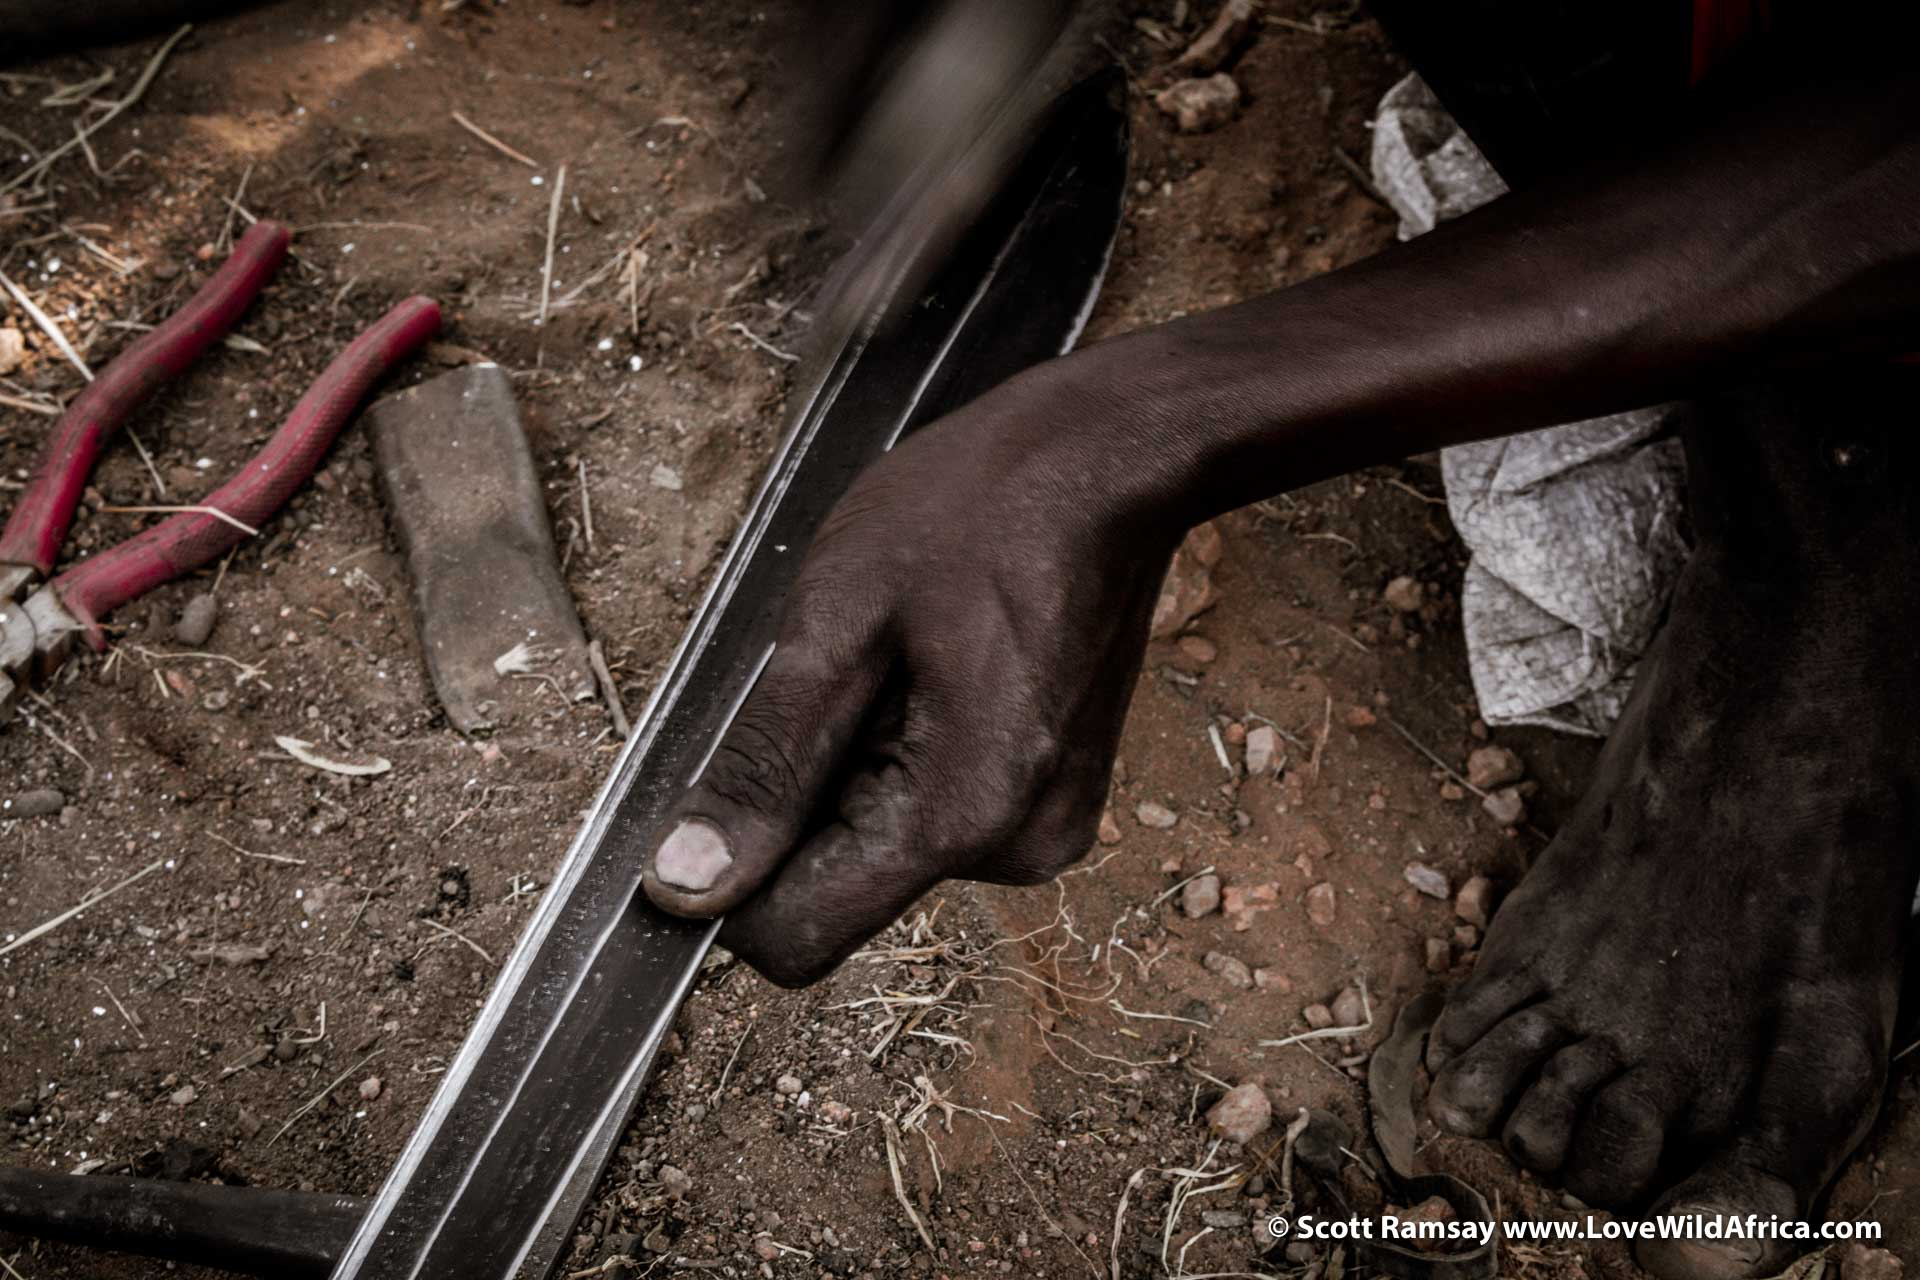 Smoothing and sharpening the blade...these swords are used for defending cattle from lions and other predators, and perhaps for skirmishes with obstreperous Turkana raiders.